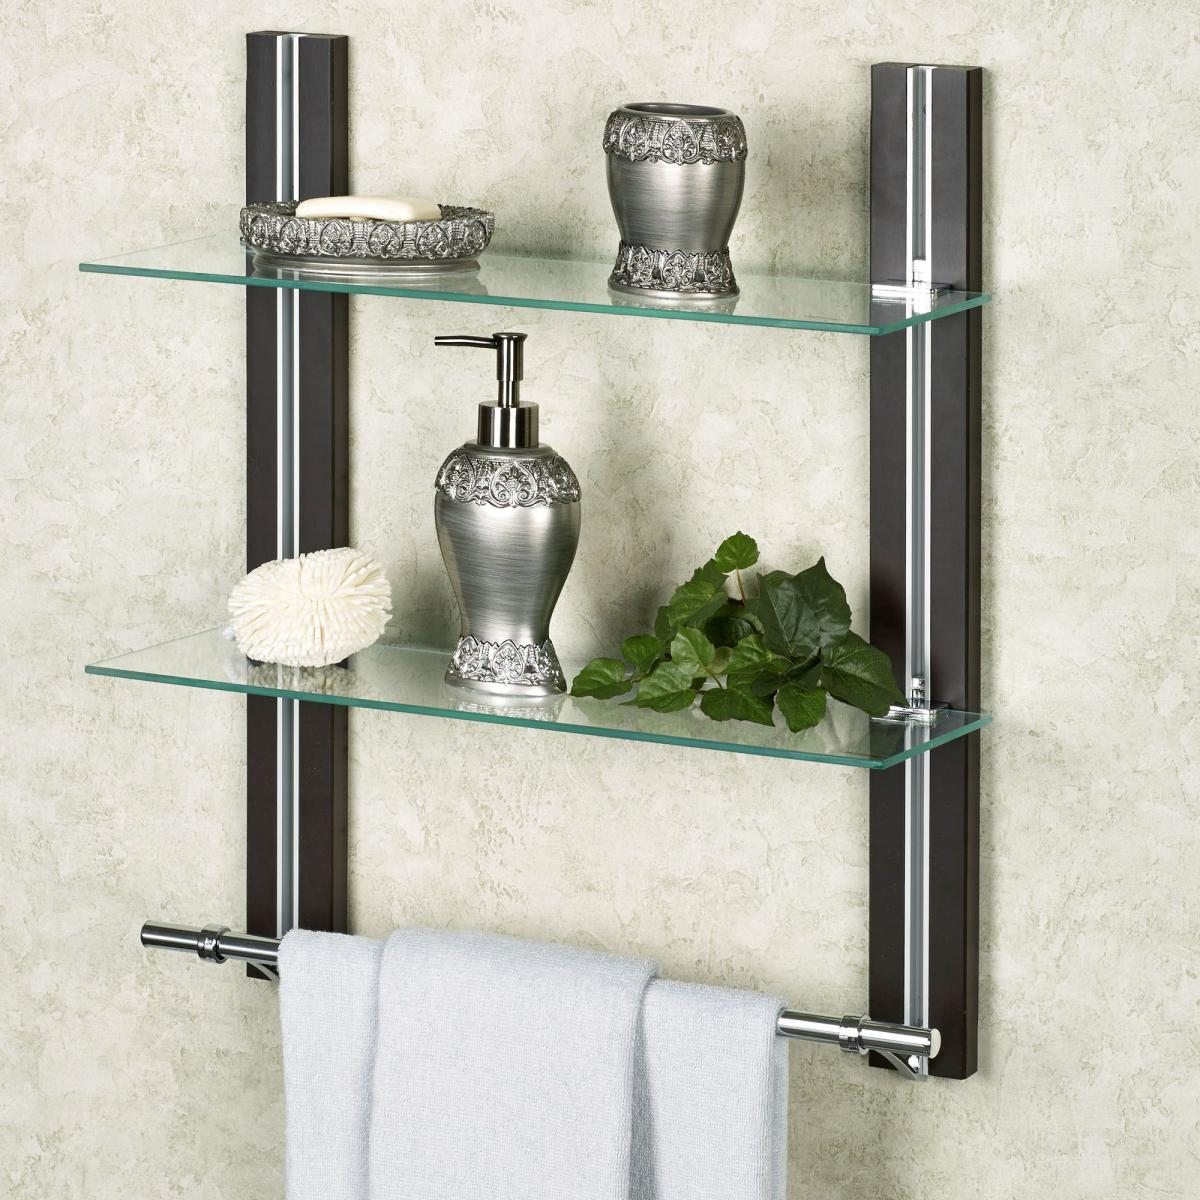 Bathroom Glass Shelf Organizer with Towel Holder 2 Tire ...